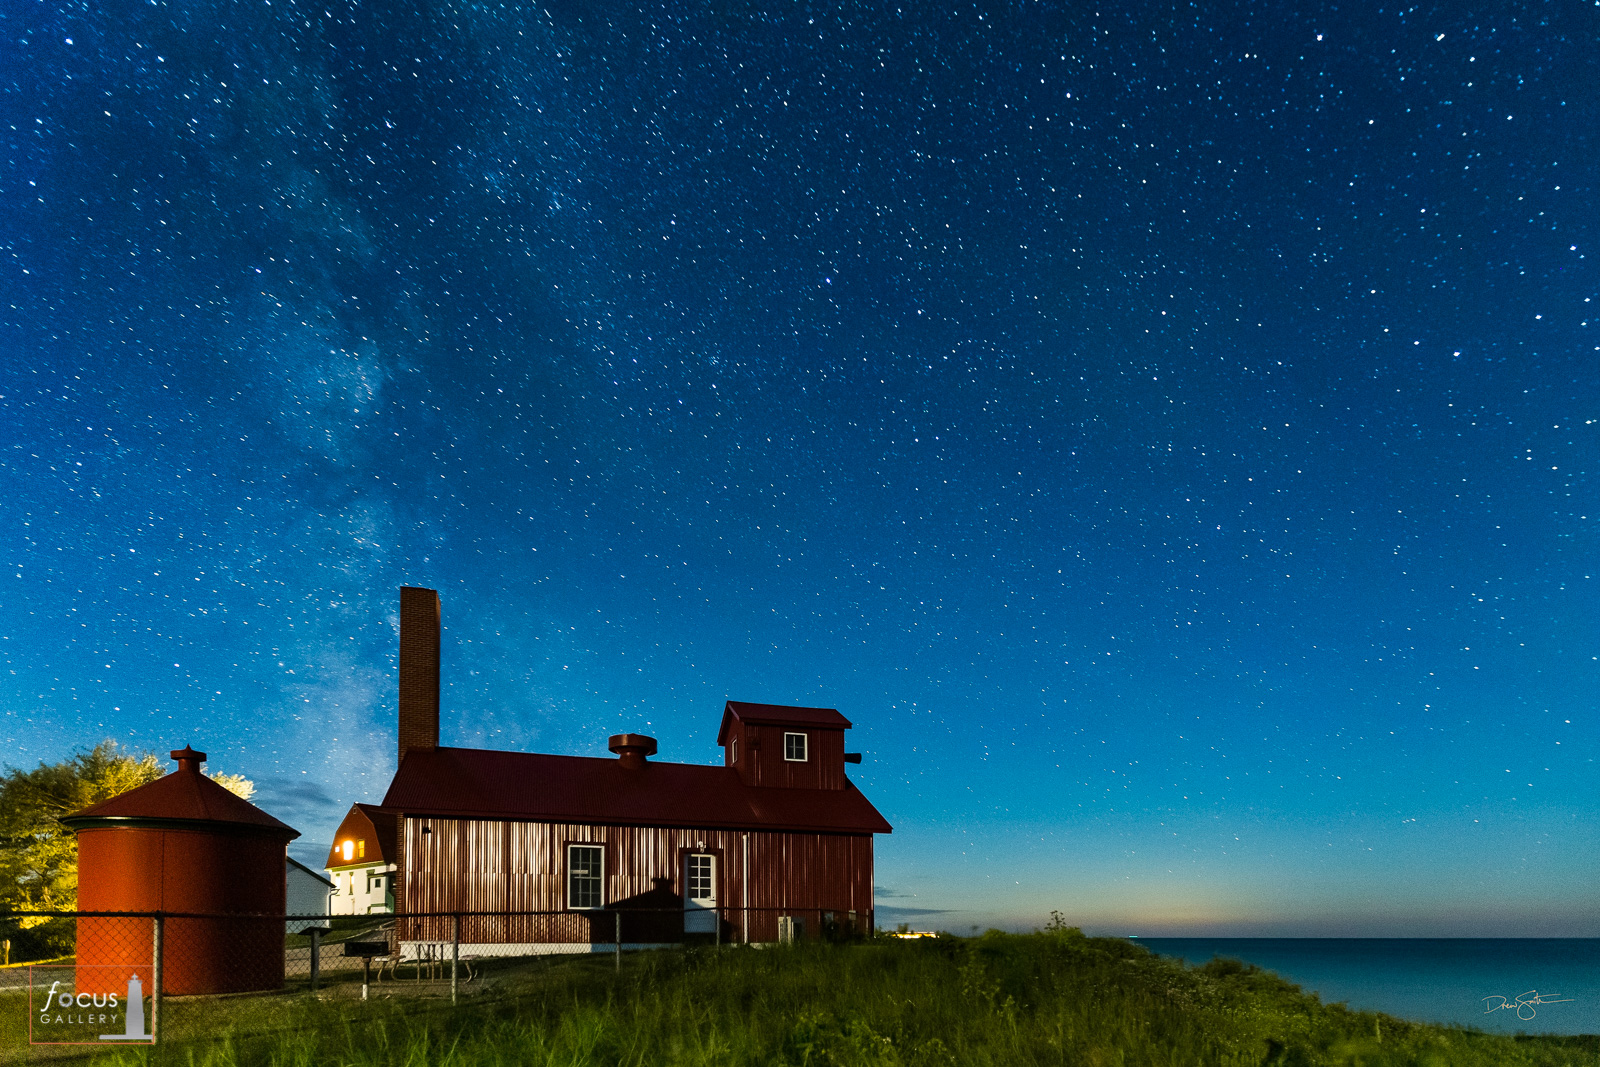 Starry skies over the fog signal building at the Point Betsie Lighthouse in Benzie County, Michigan.